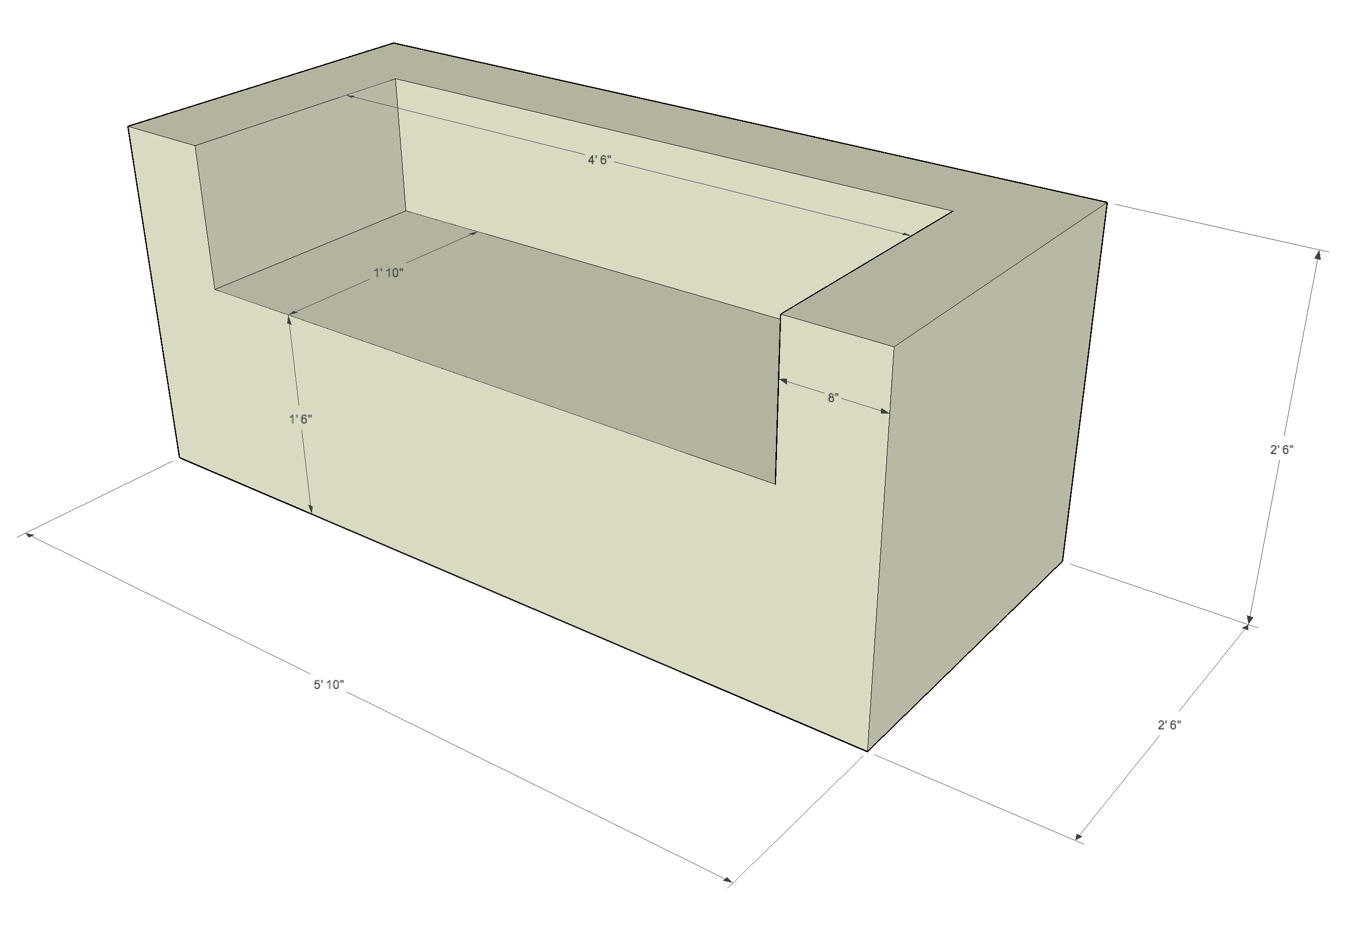 grady middle school citizen school sketchup furniture dimensions